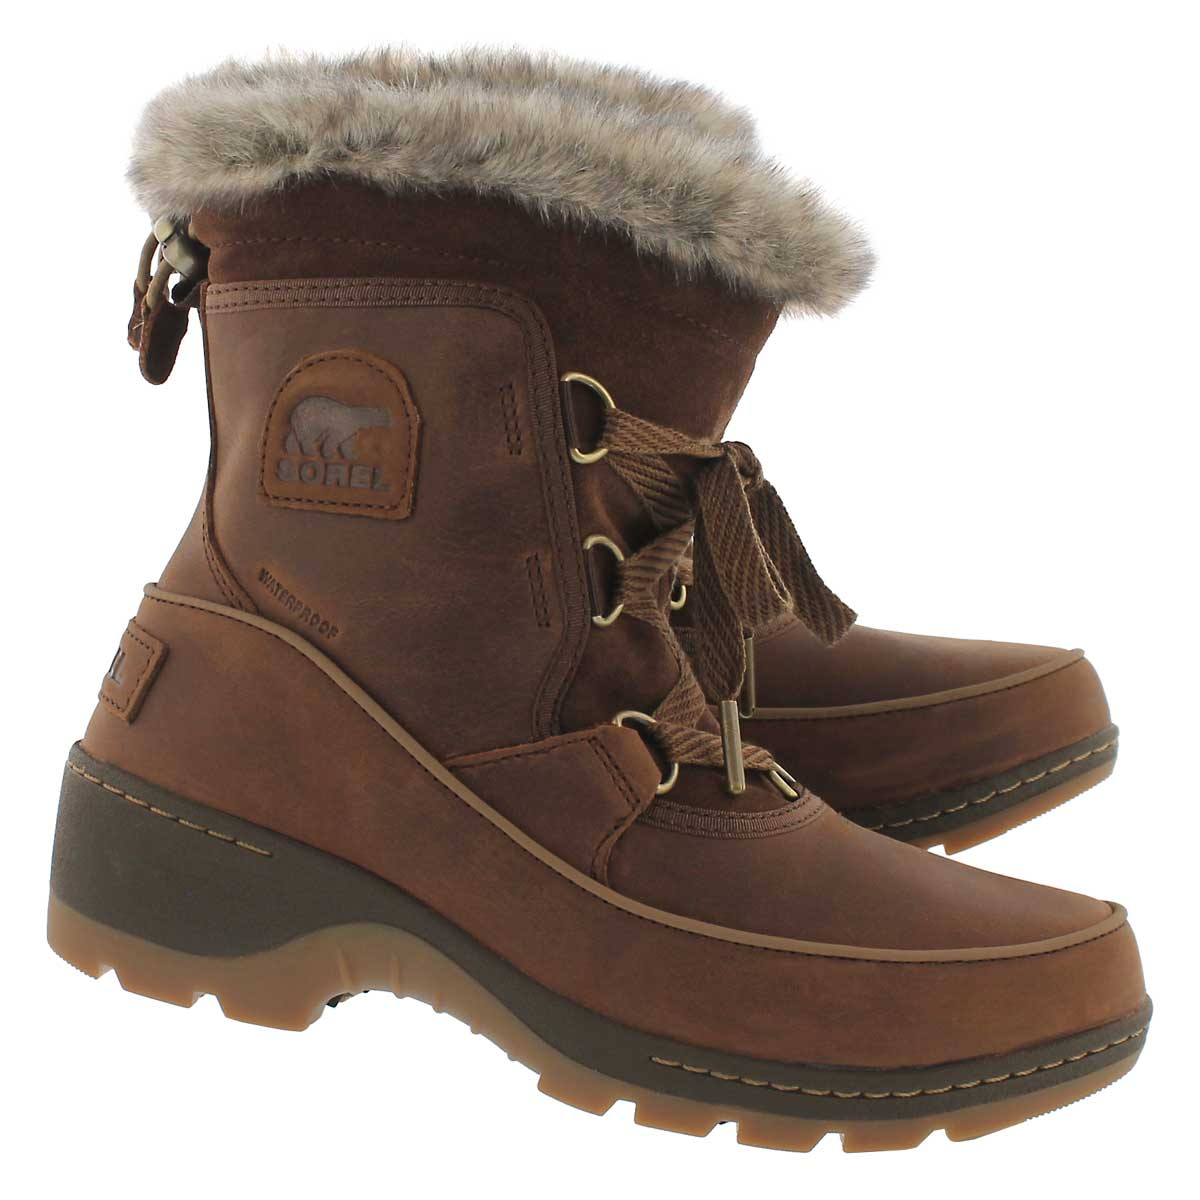 Lds Tivoli III Premium tobac winter boot